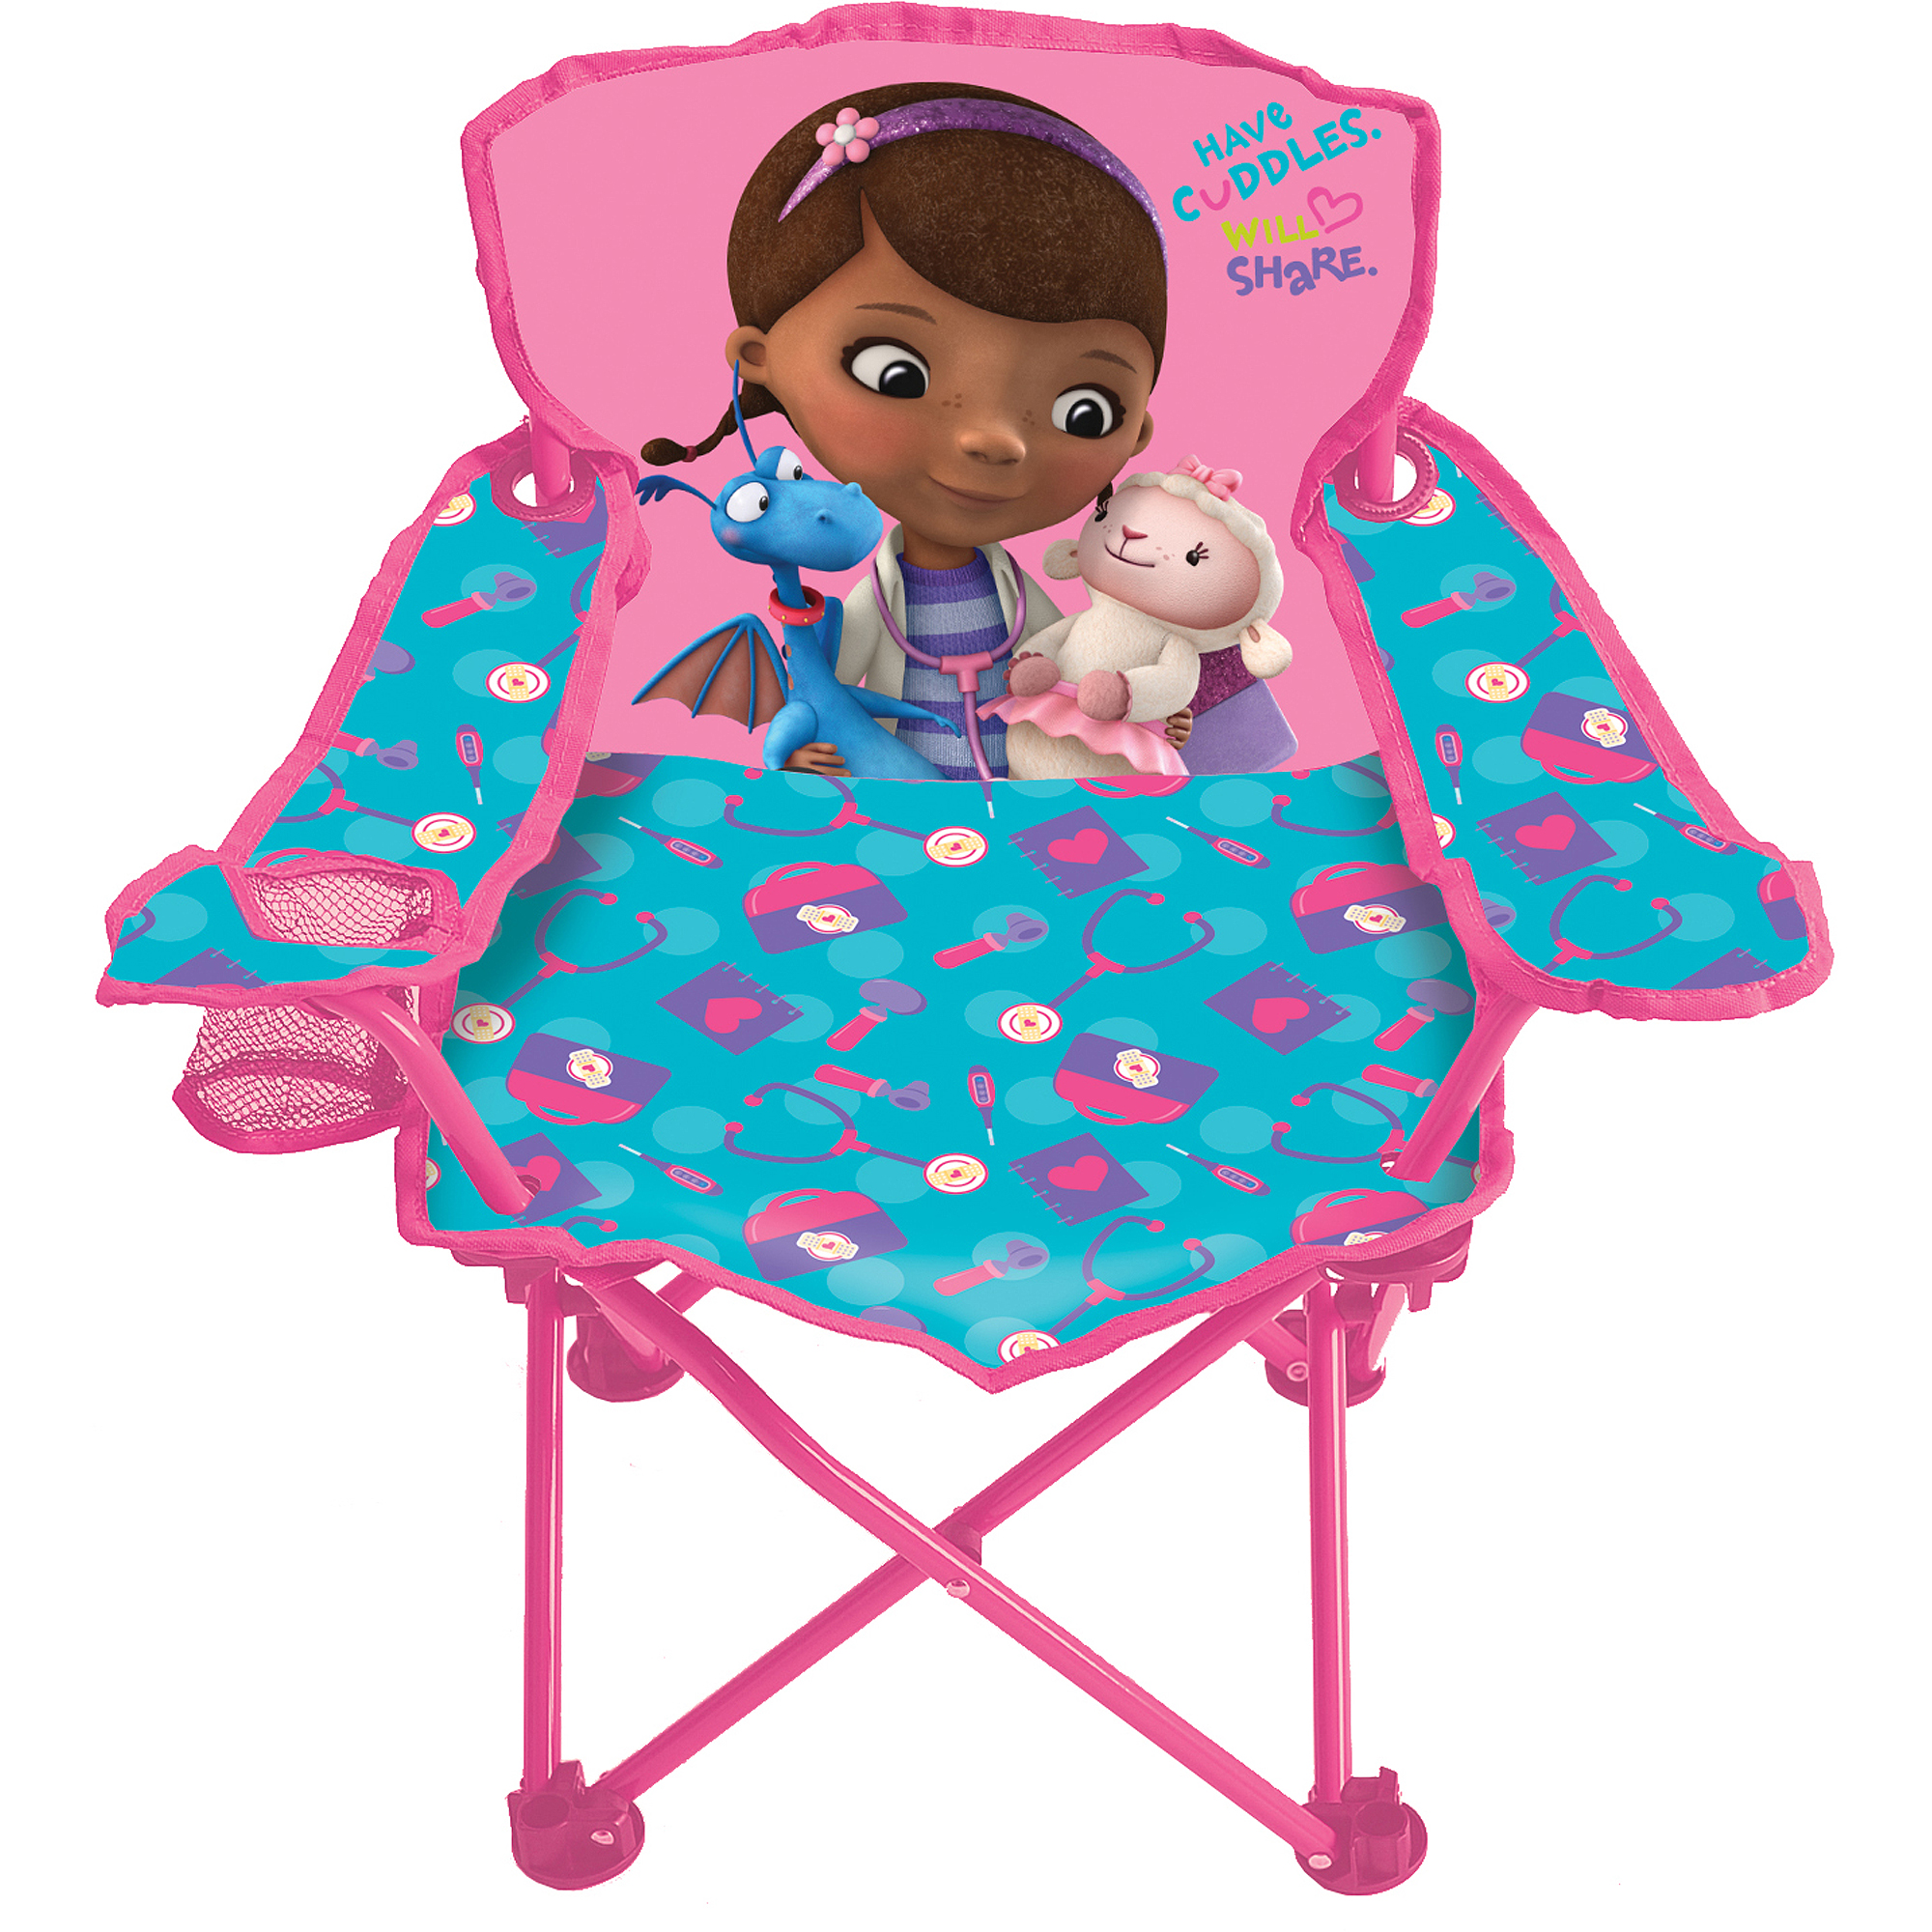 doc mcstuffins erasable activity table and chair set blue shell side roselawnlutheran